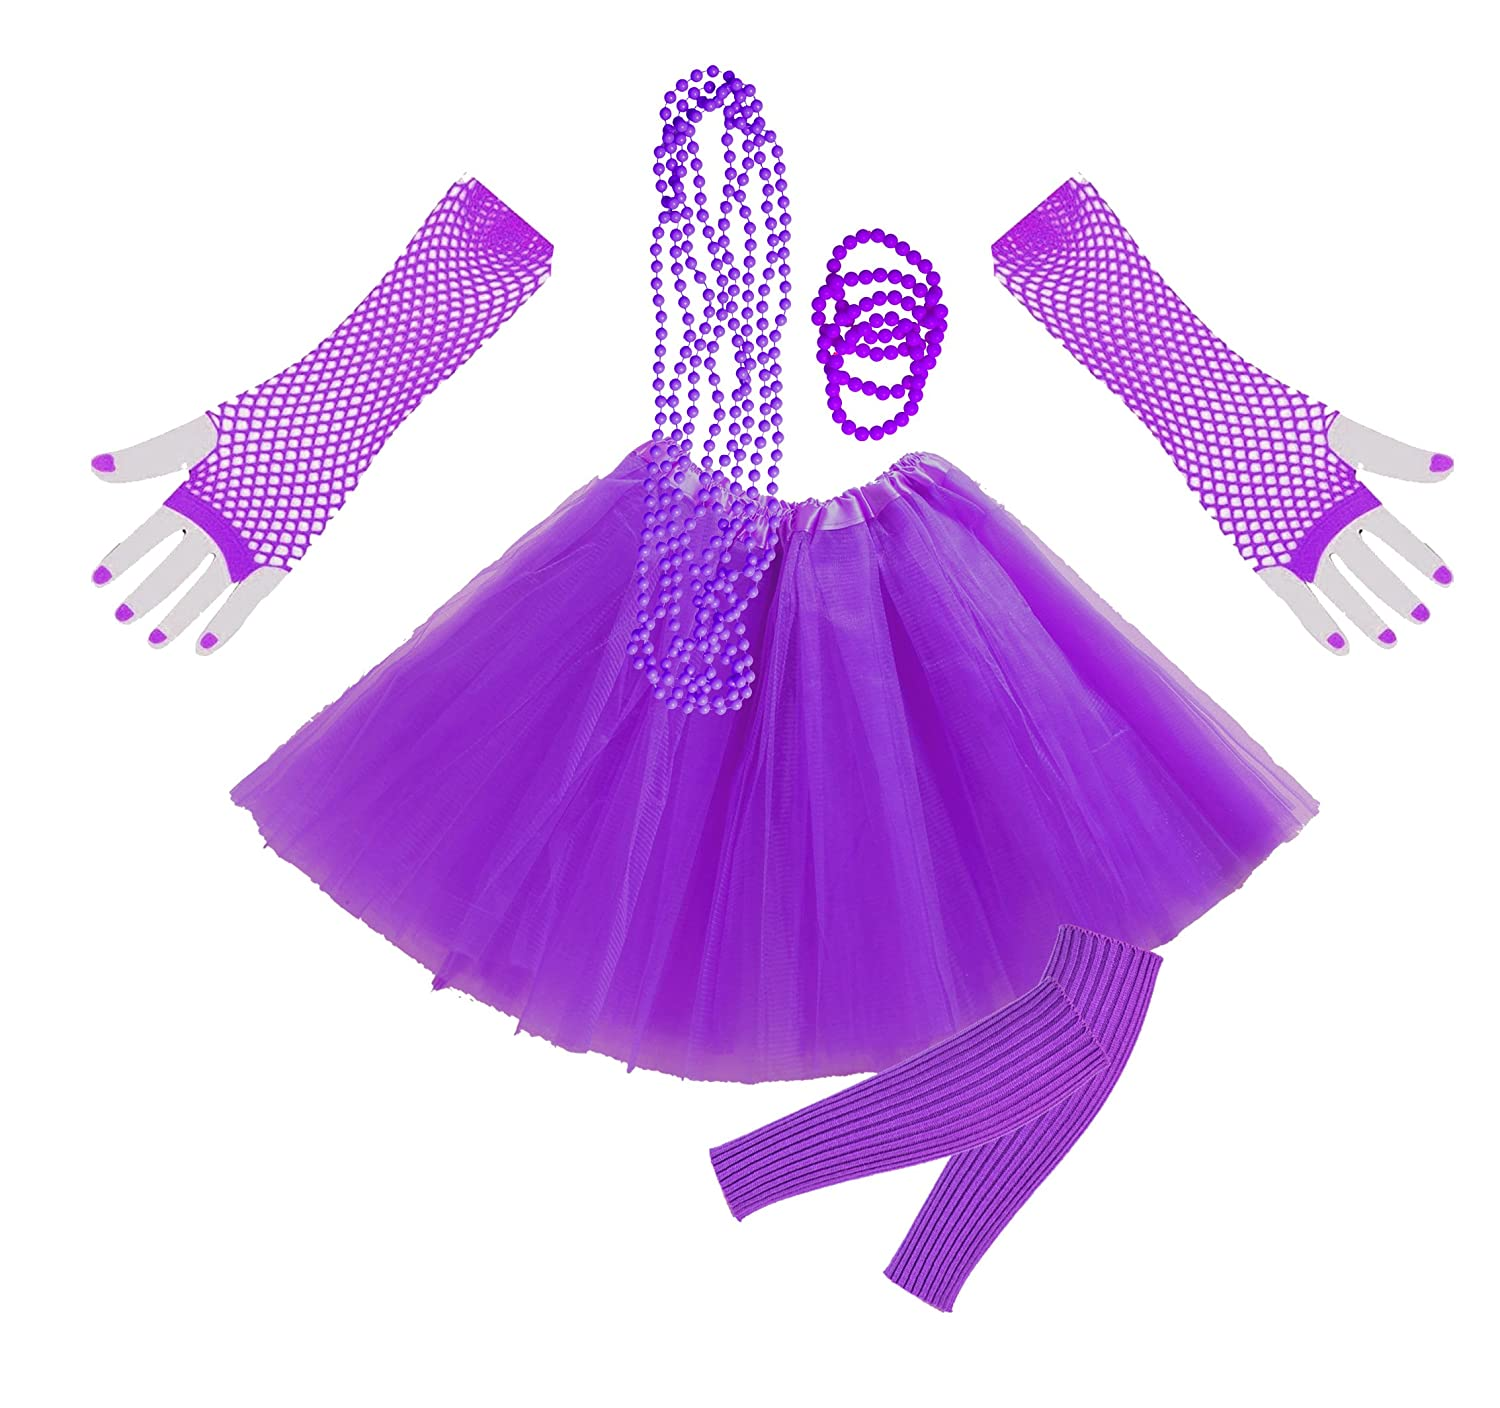 Ladies Accessories Set for quick and easy 80s dress-up